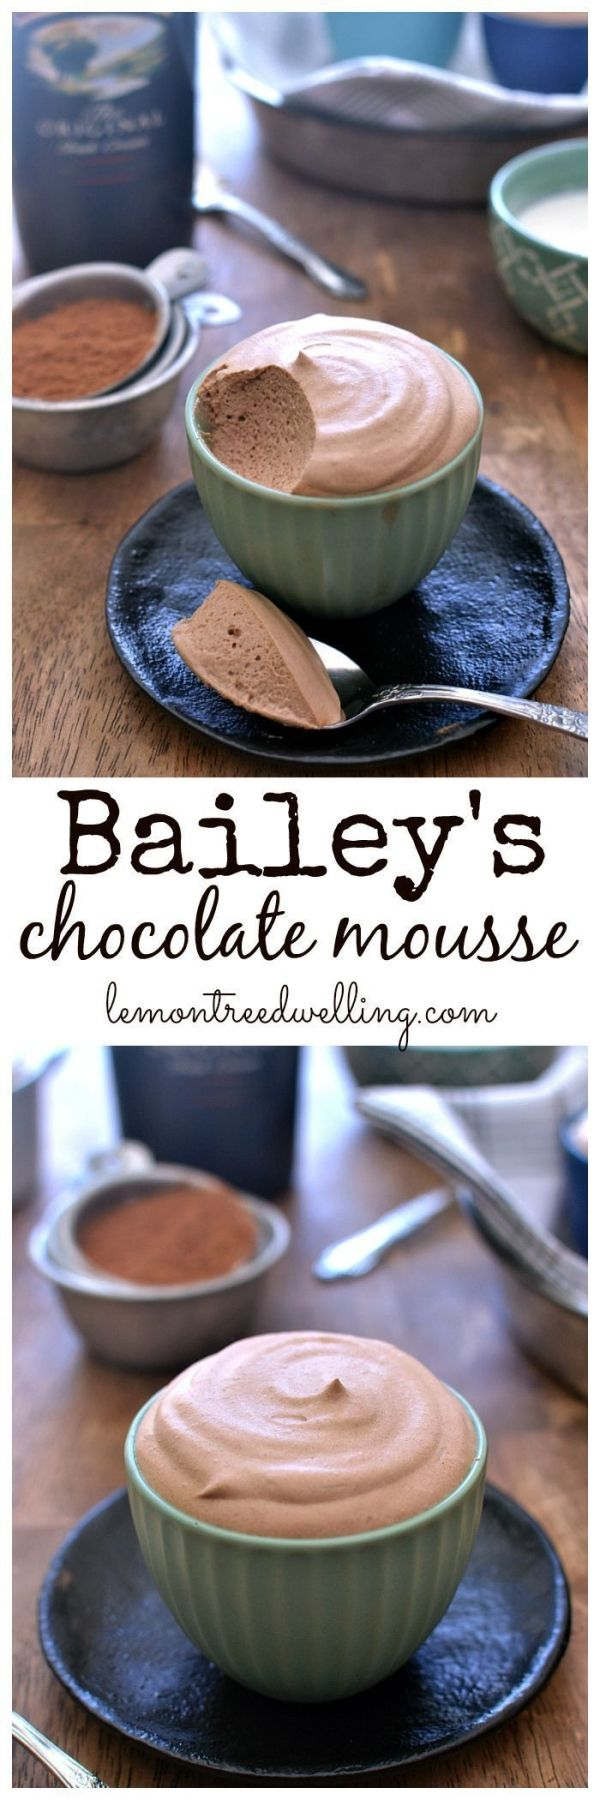 Bailey's Chocolate Mousse by lemontreedwelling Light, fluffy, and completely decadent! Chocolate Mousse Baileys by elinor is part of Christmas food desserts -